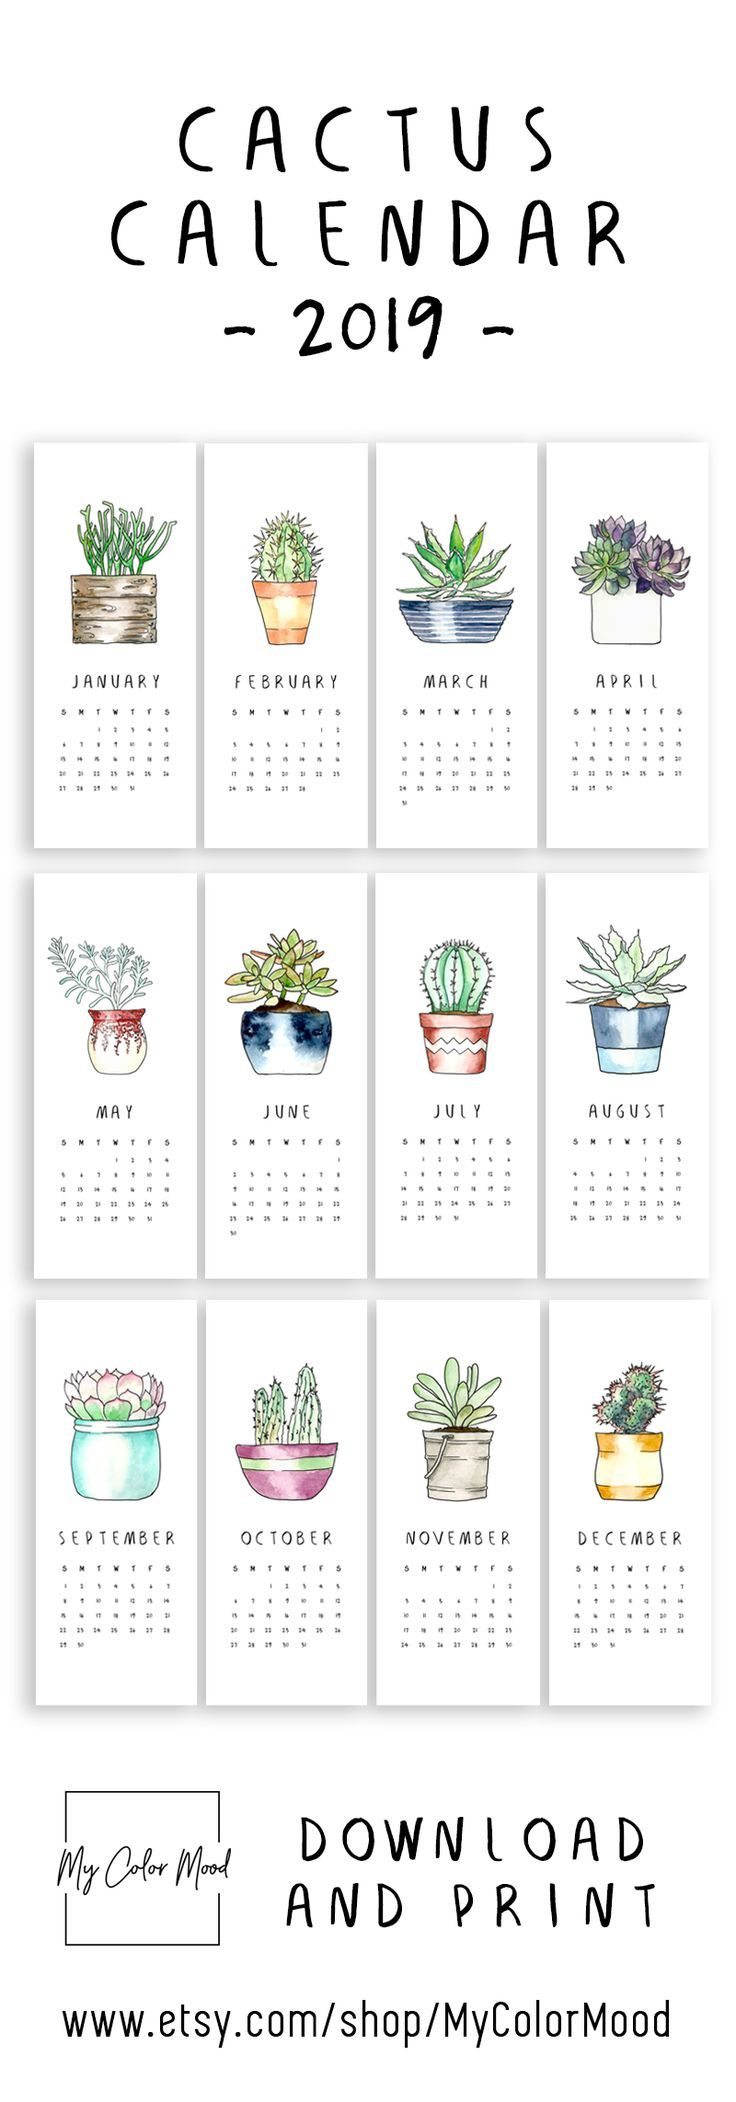 Printable calendar pages 2019, Small monthly calendar 2019 printable, Hanging cactus calendar, Succulent calender 2019, Cute office calendar